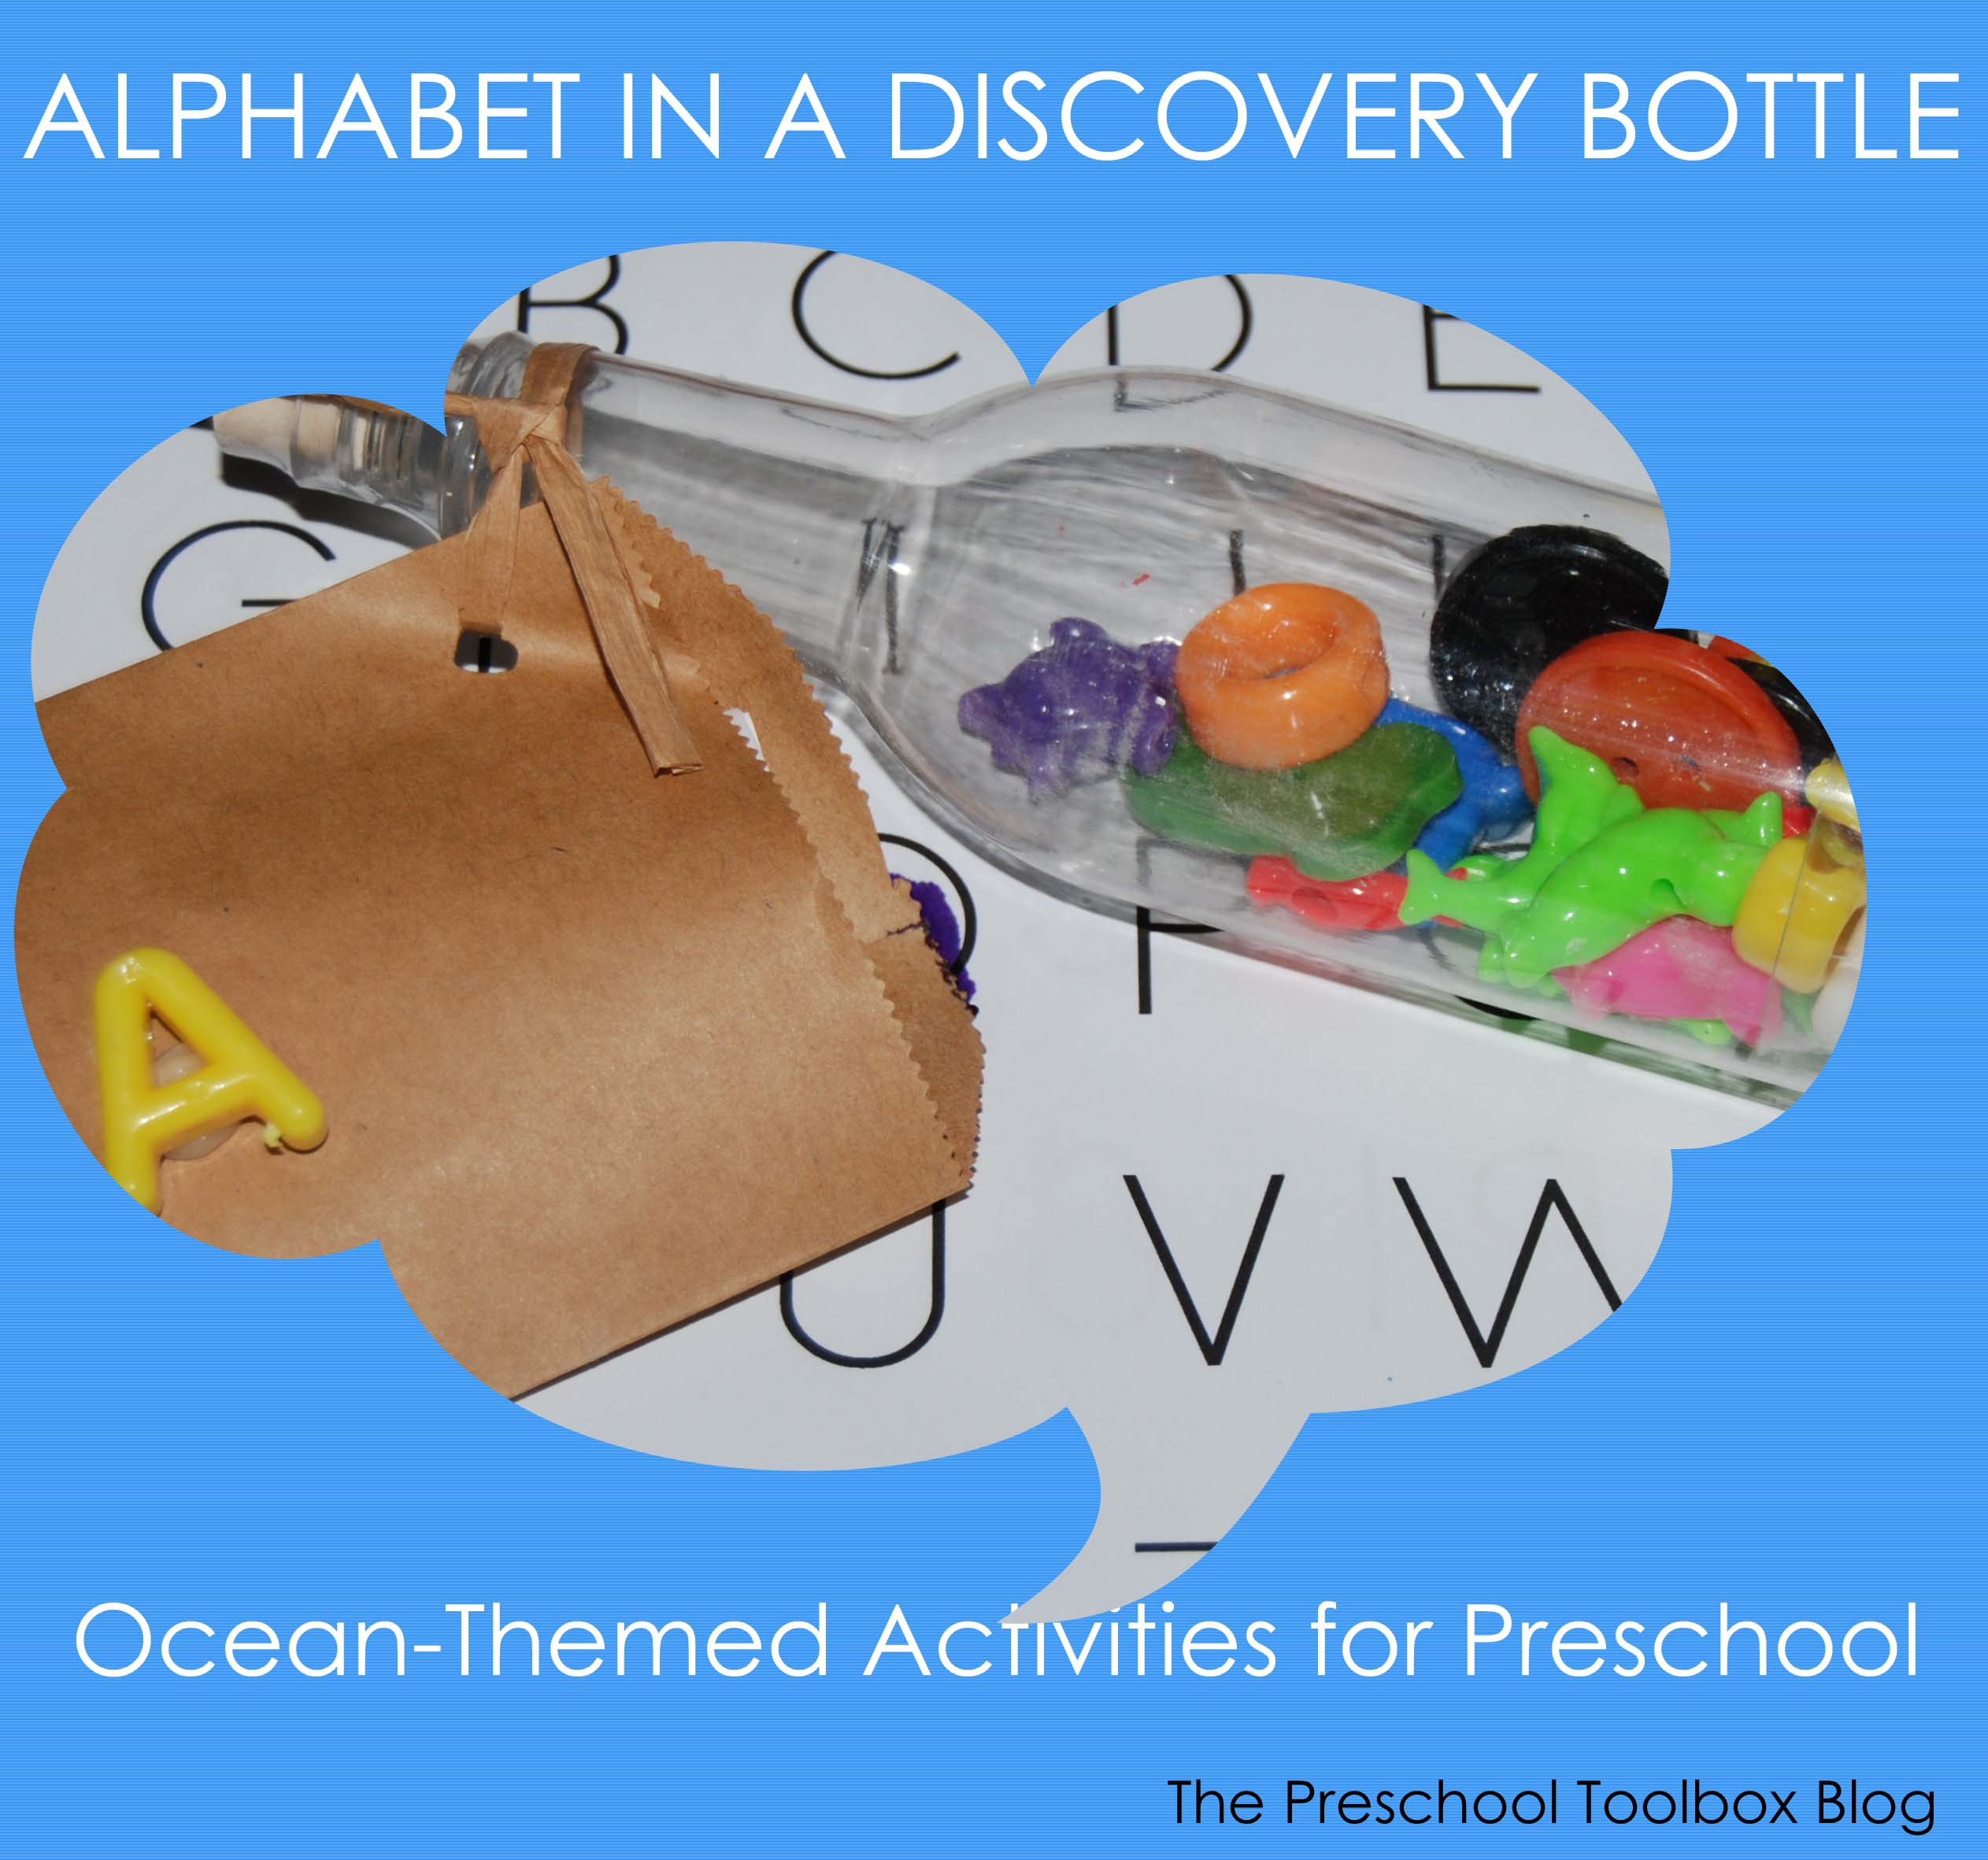 Alphabet Bottles The Preschool Toolbox Blog